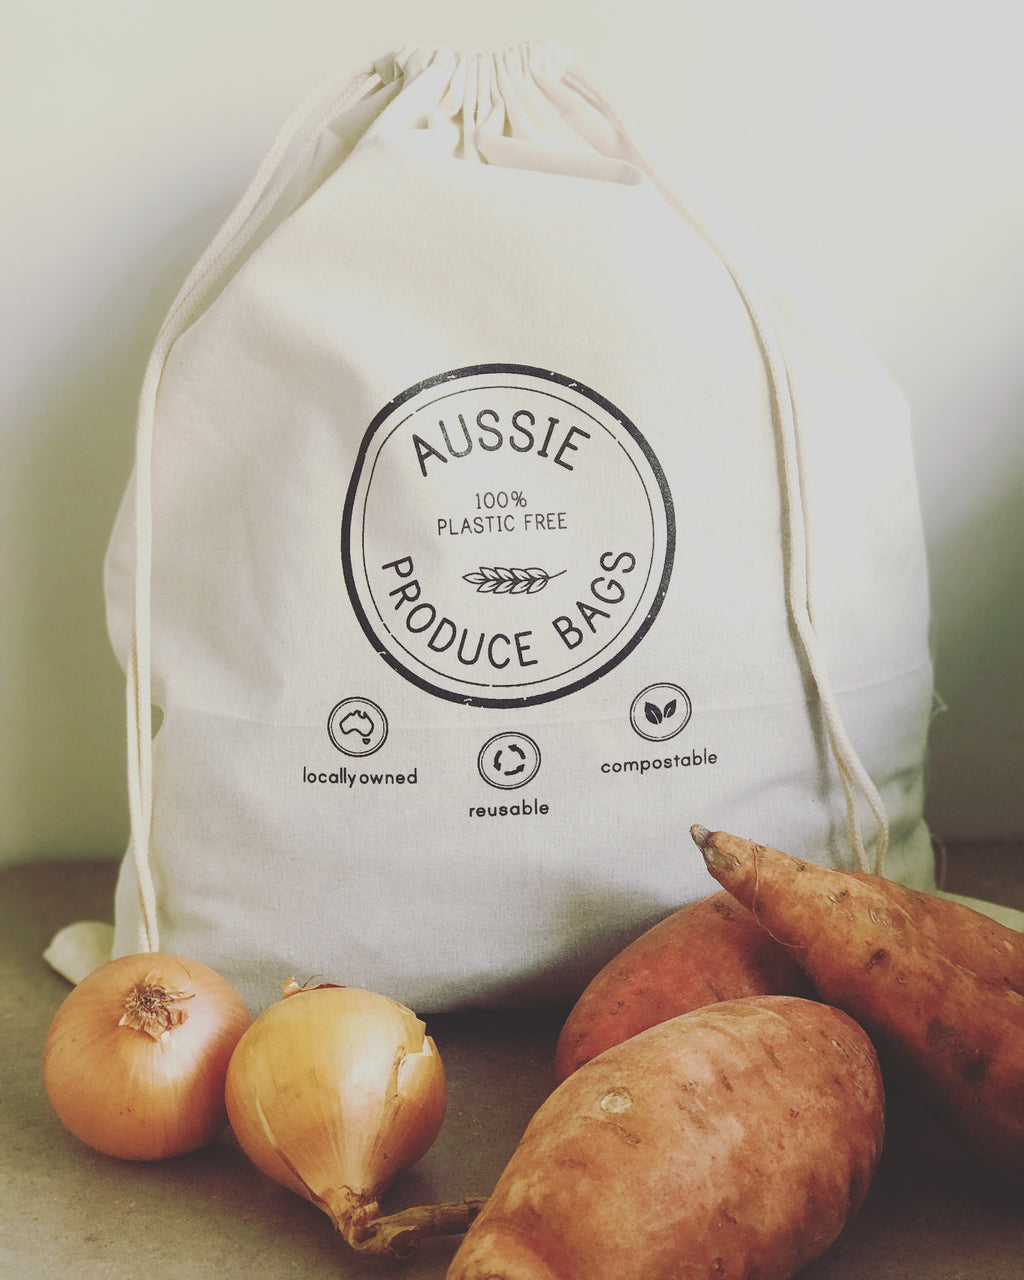 Aussie Produce Bags